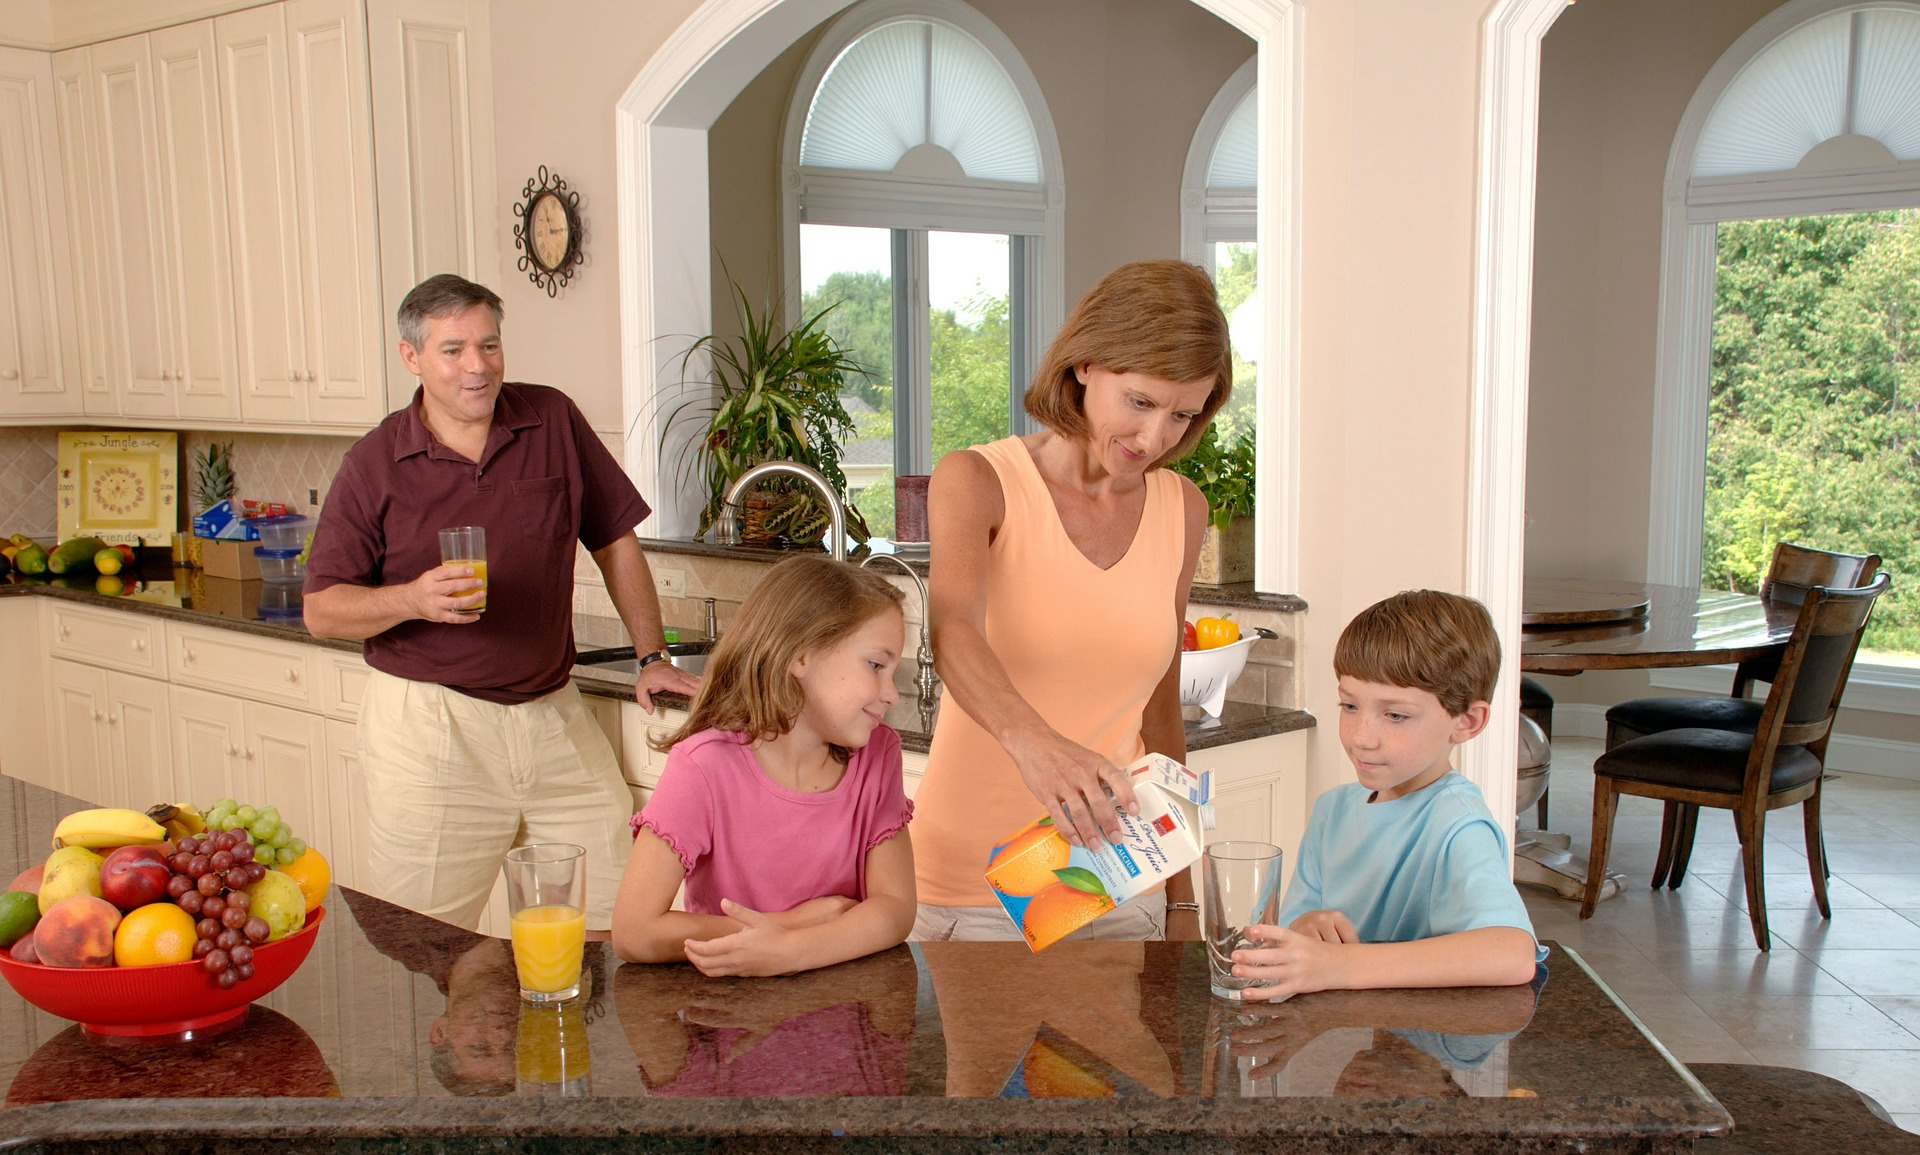 family-drinking-orange-juice-619144_1920